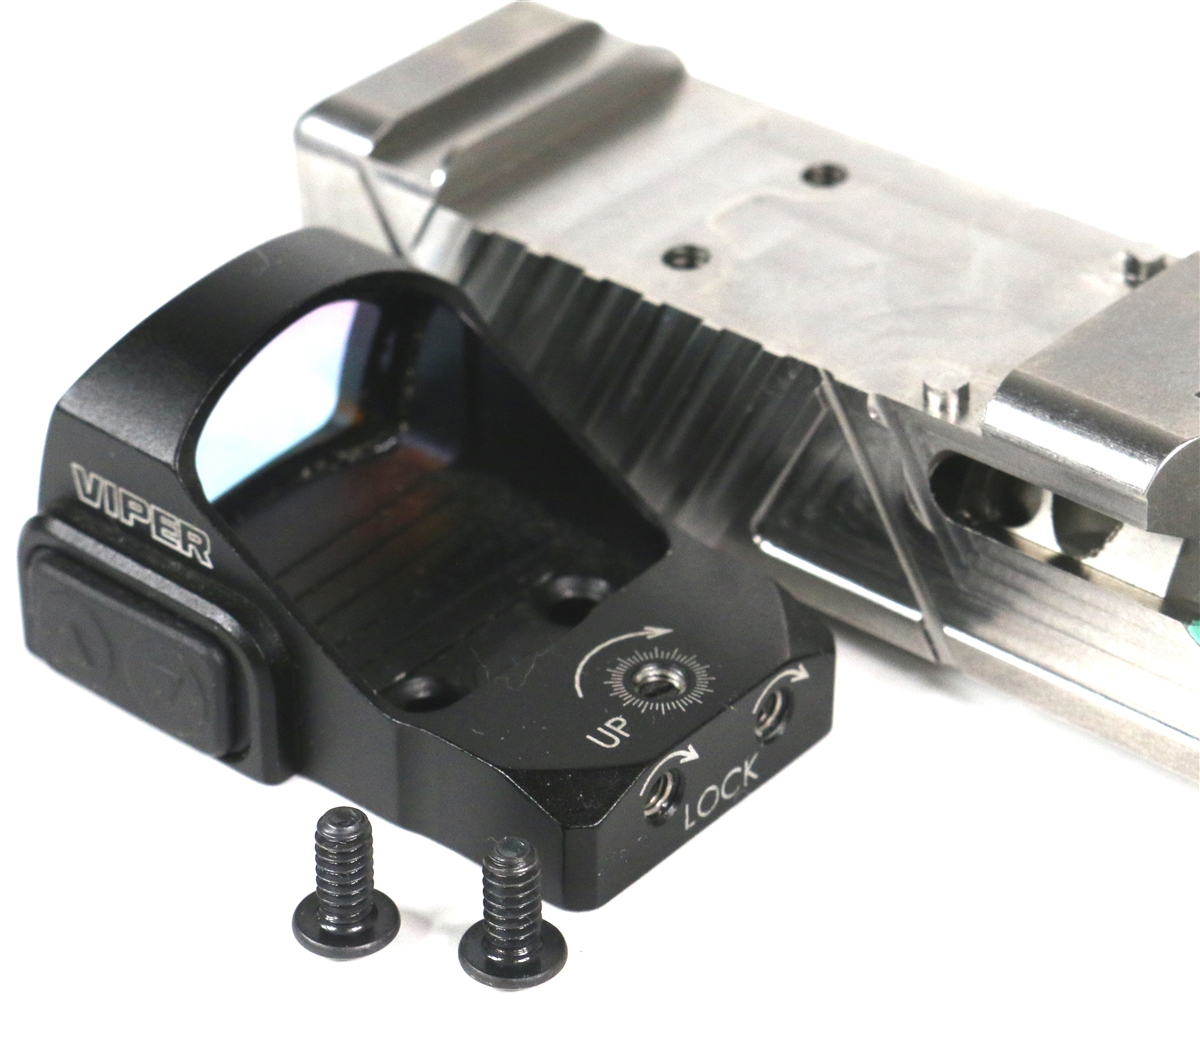 Vortex Viper Optic cut for Glock slides